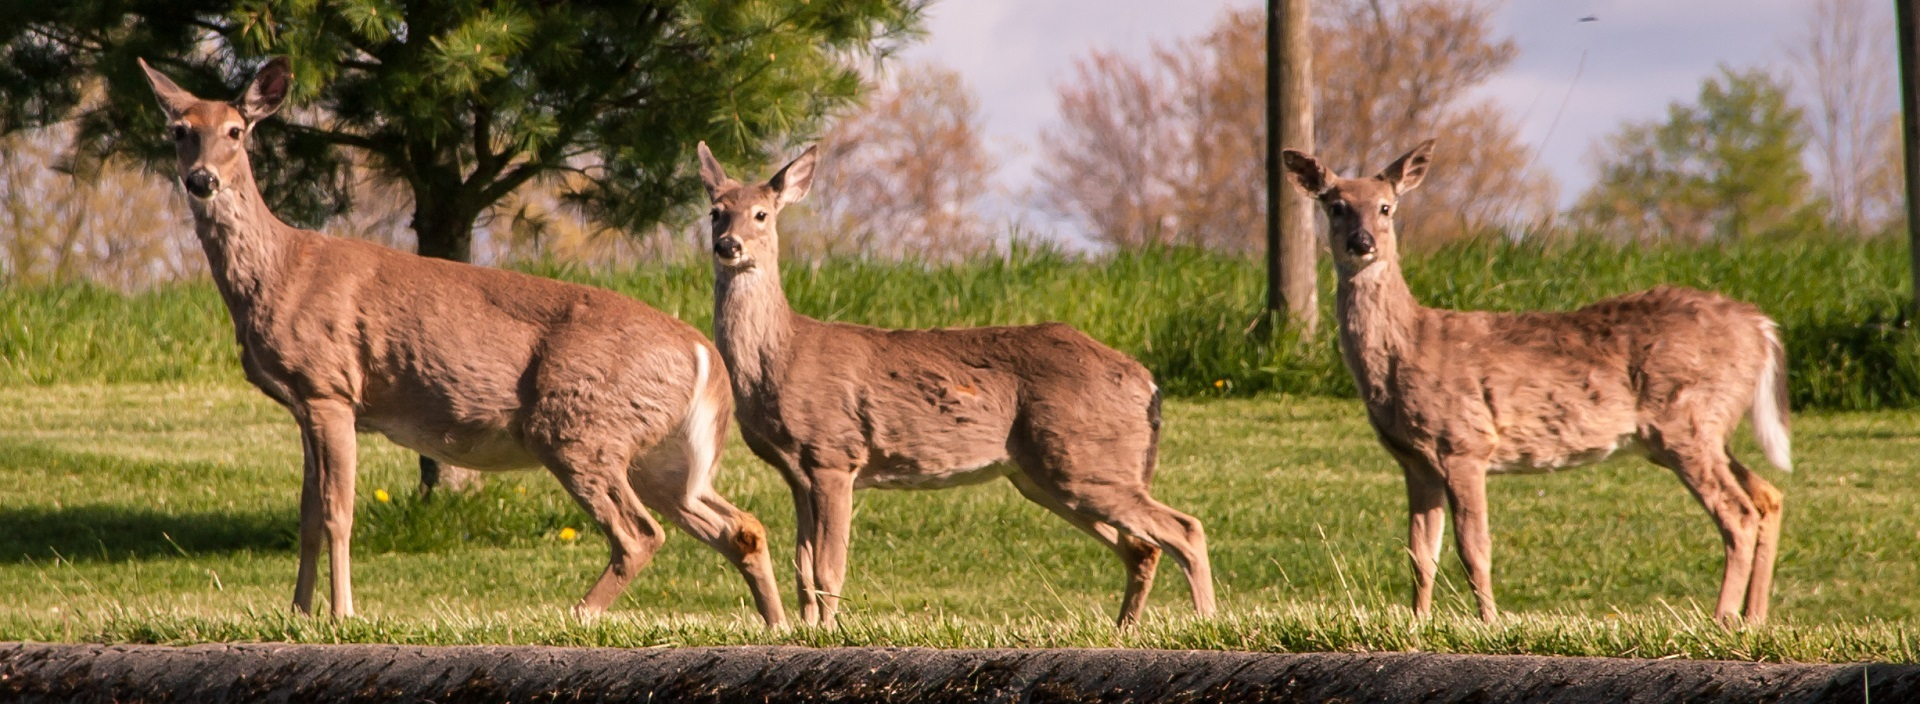 Would Deer Overpopulate Without Hunting?